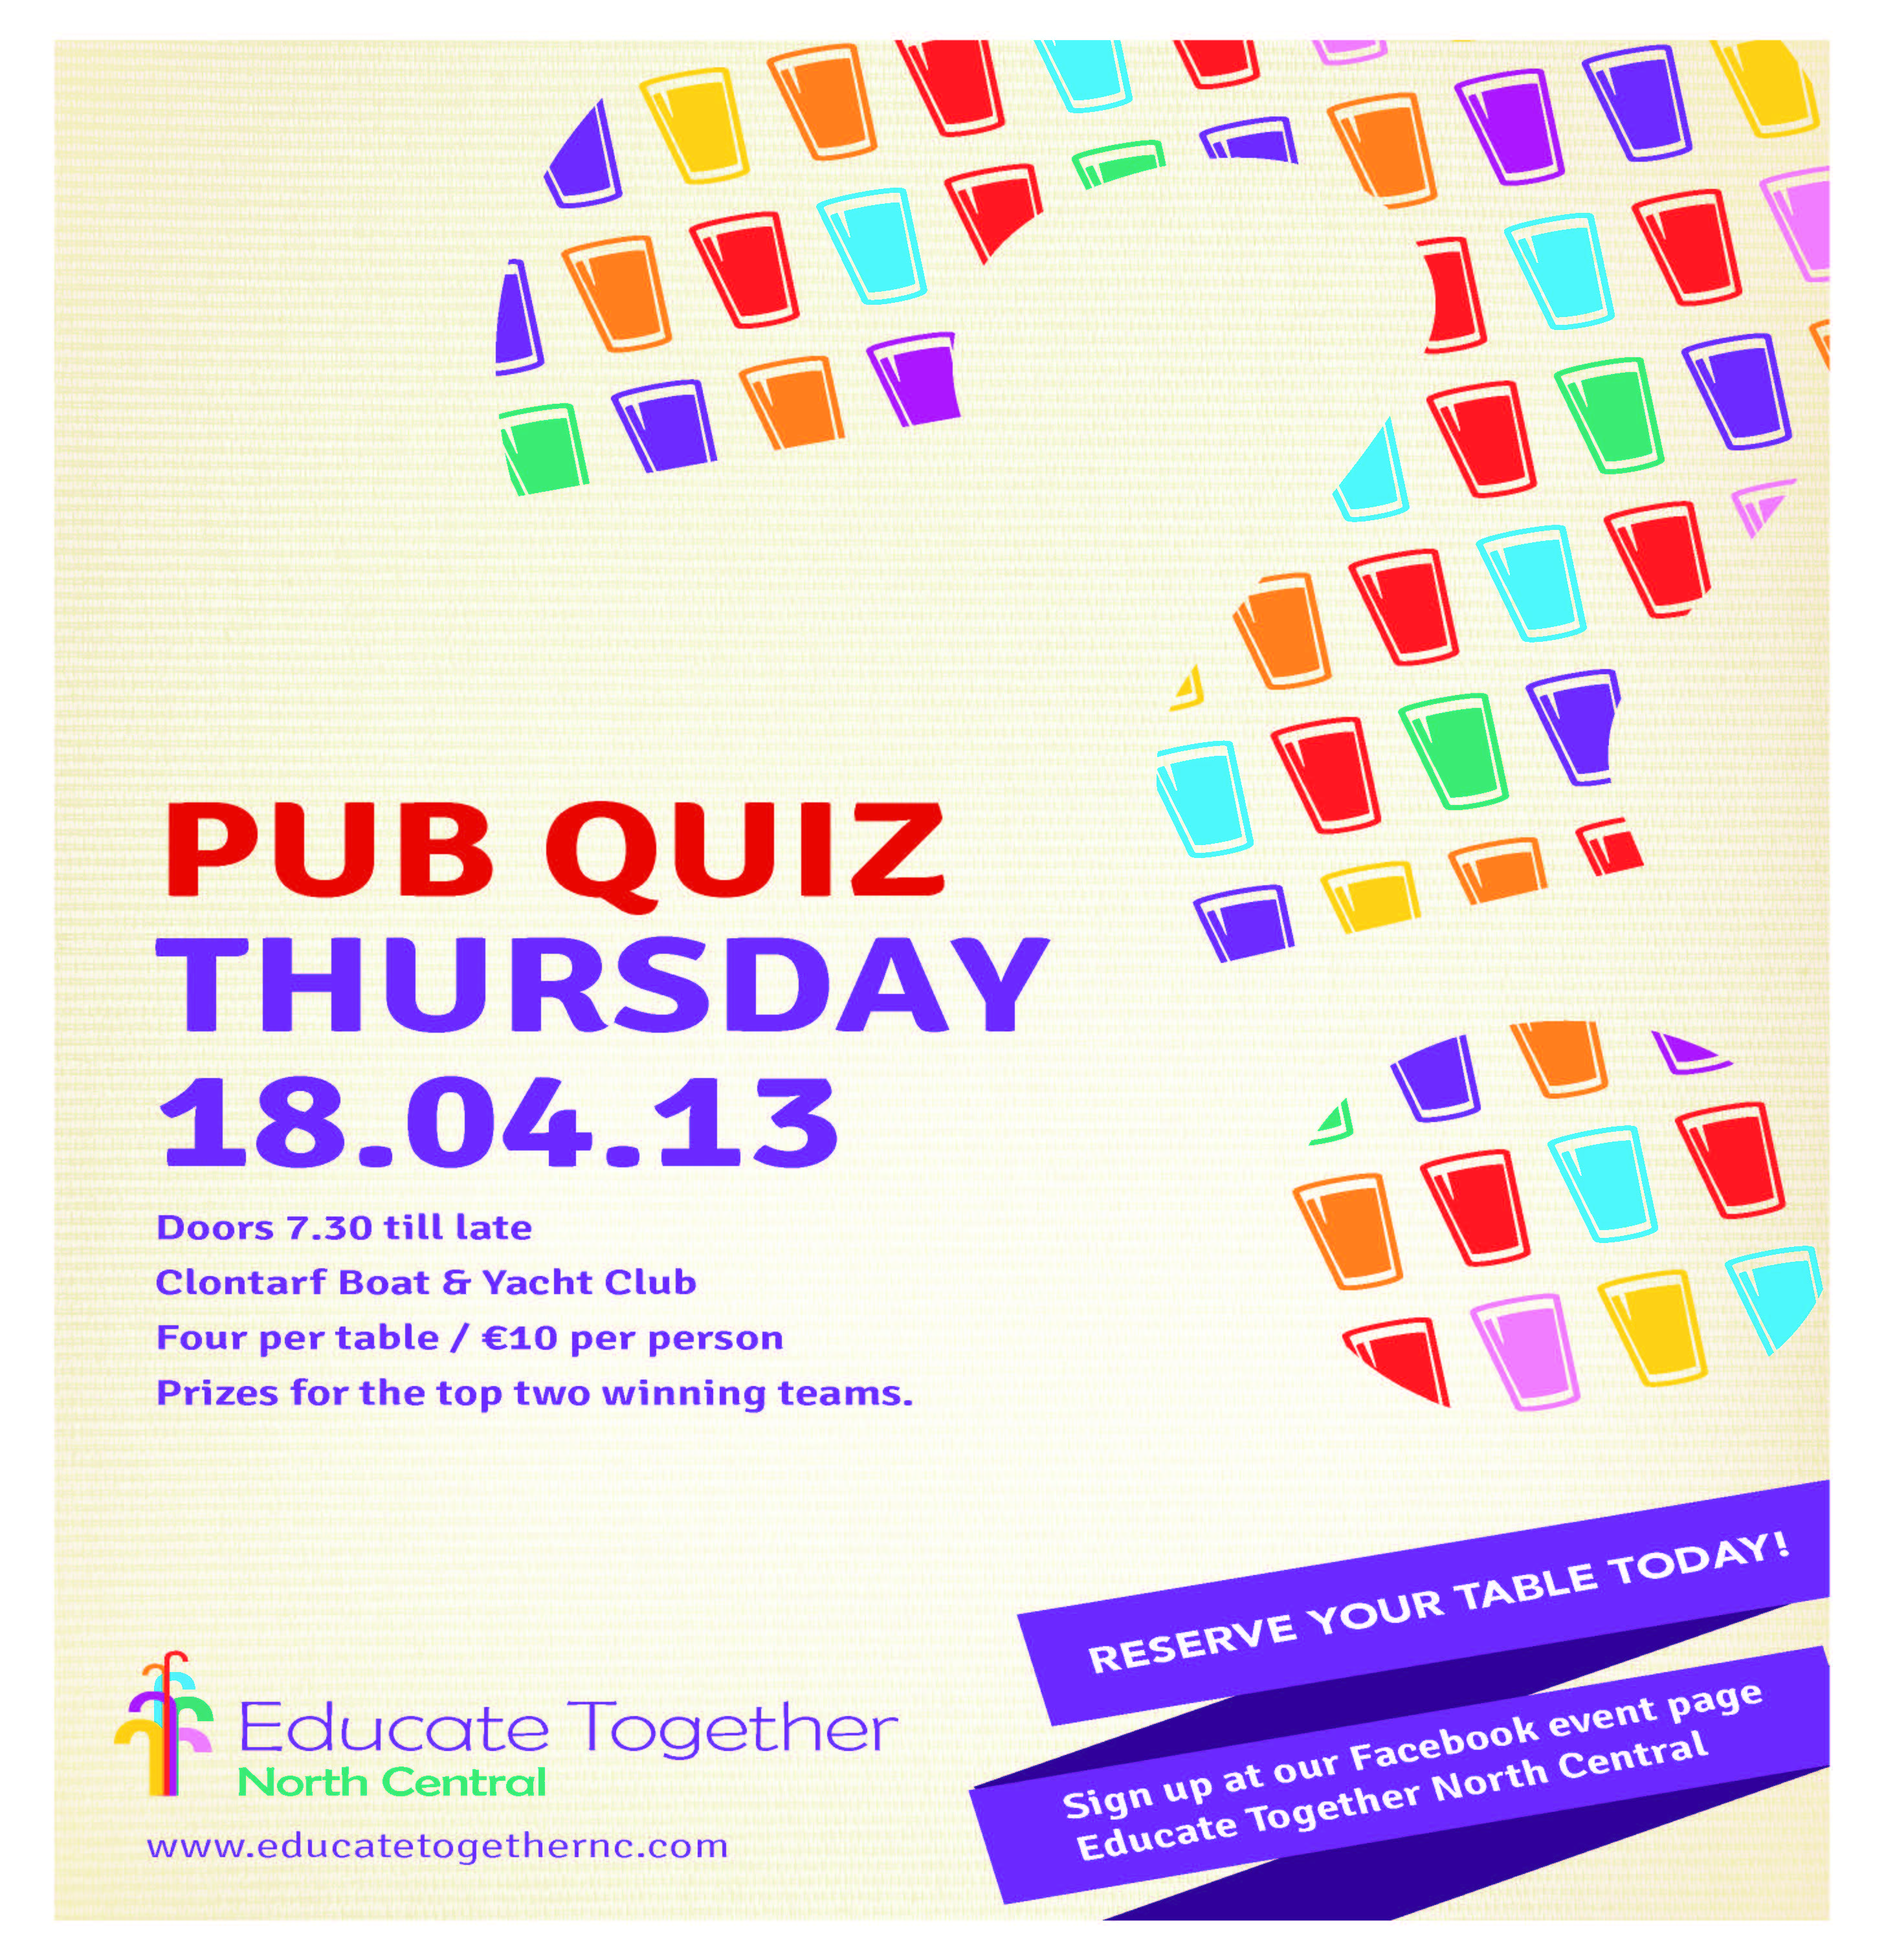 Educate Together North Central pub quiz